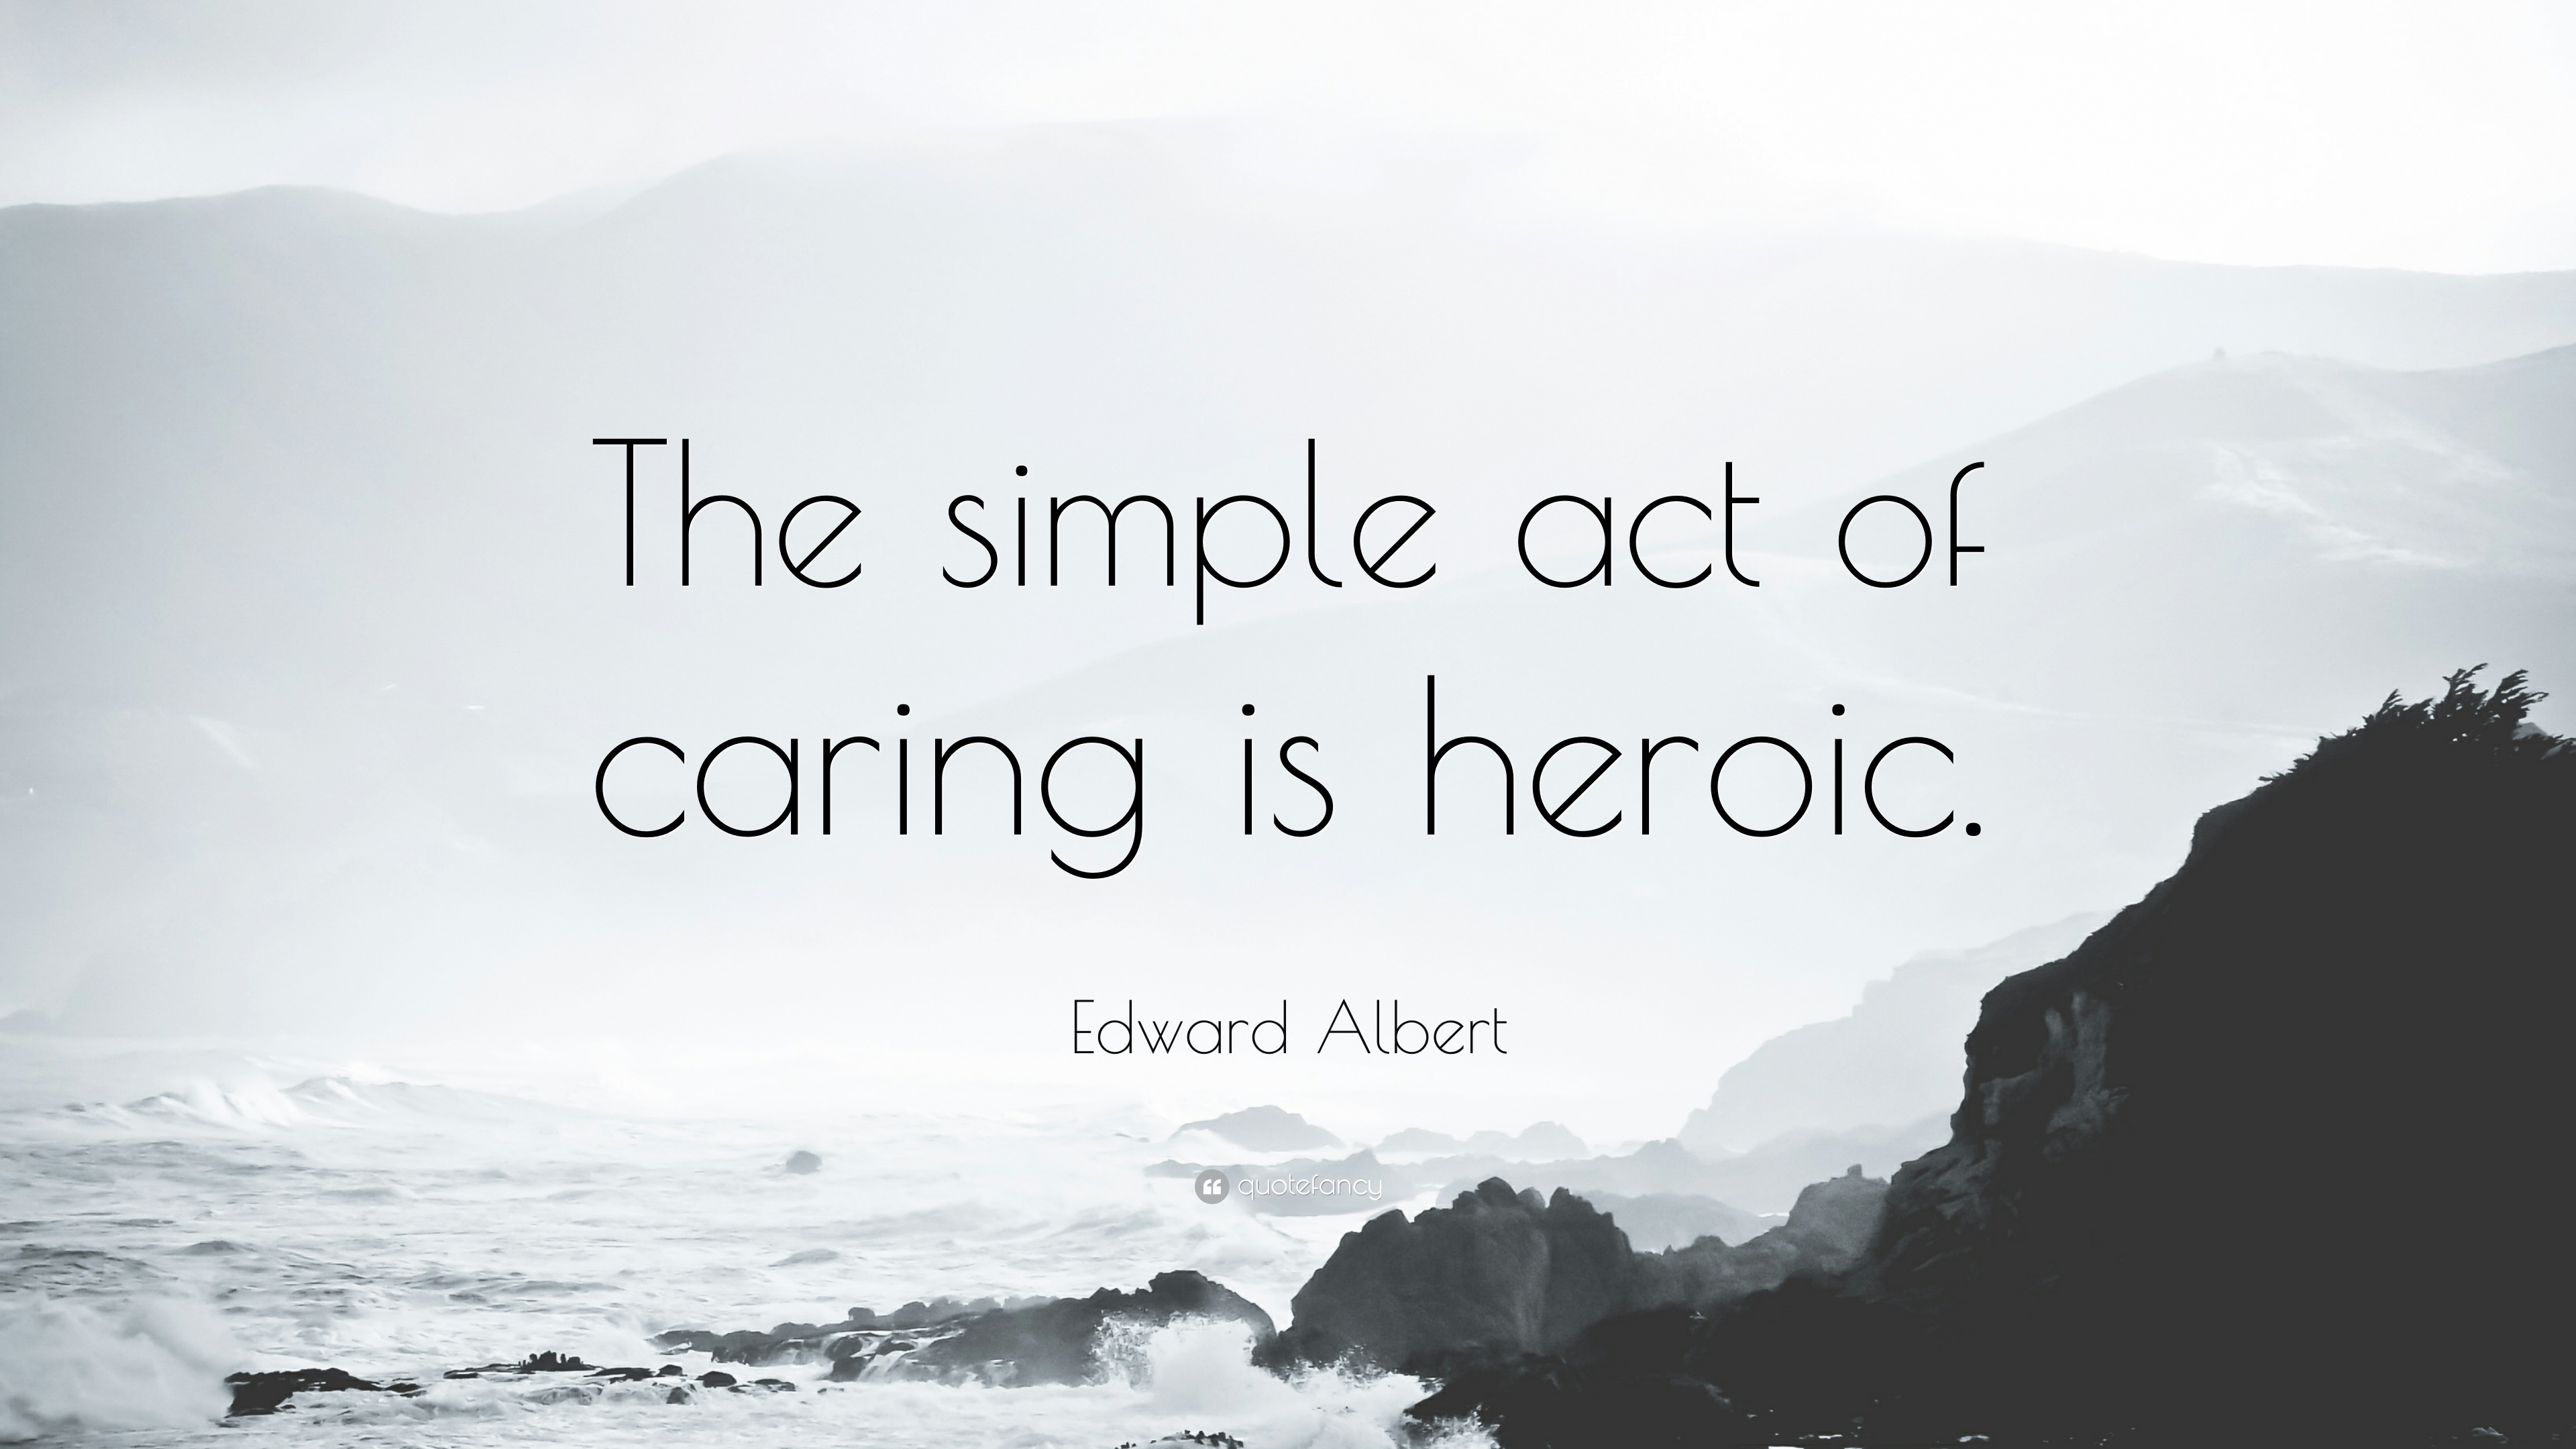 Quotes About Caring Httpsquotefancymediawallpaper3840X21601.